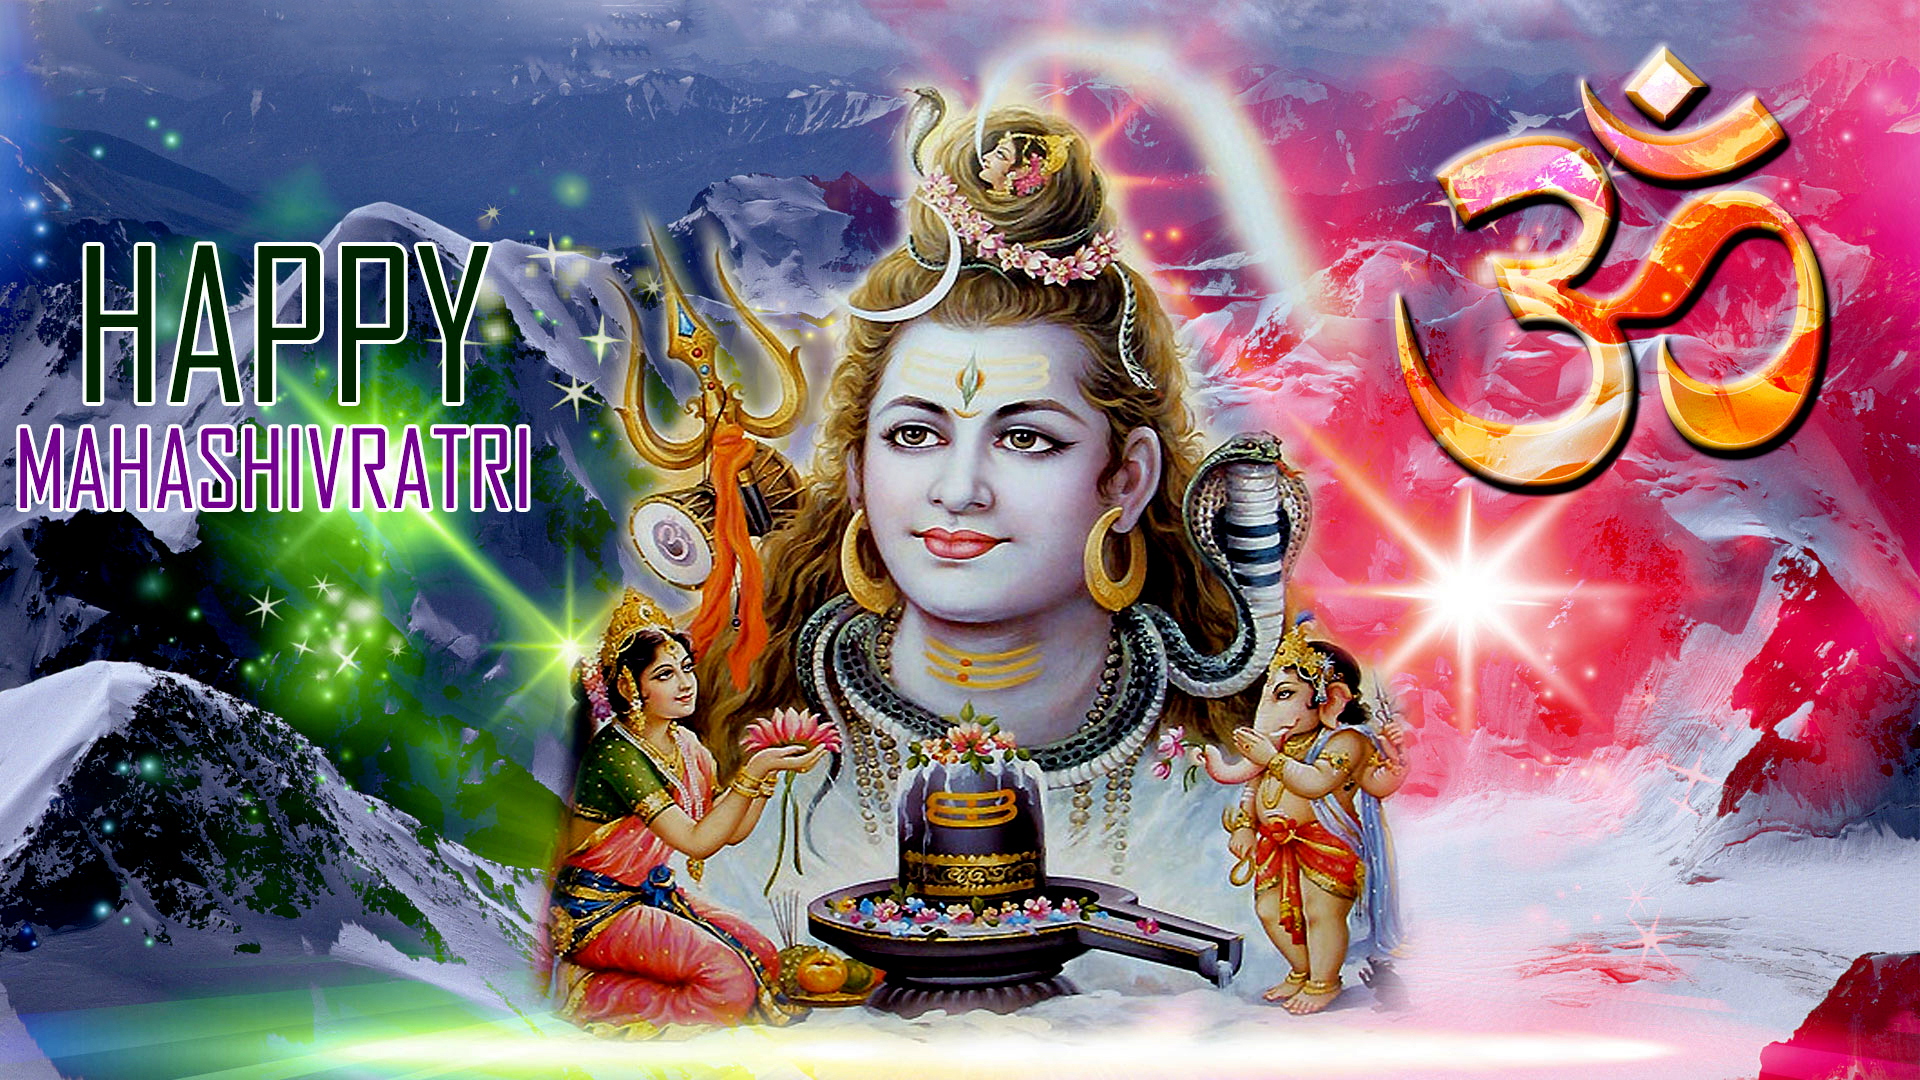 Happy Mahashivratri Full Hd Wallpaper